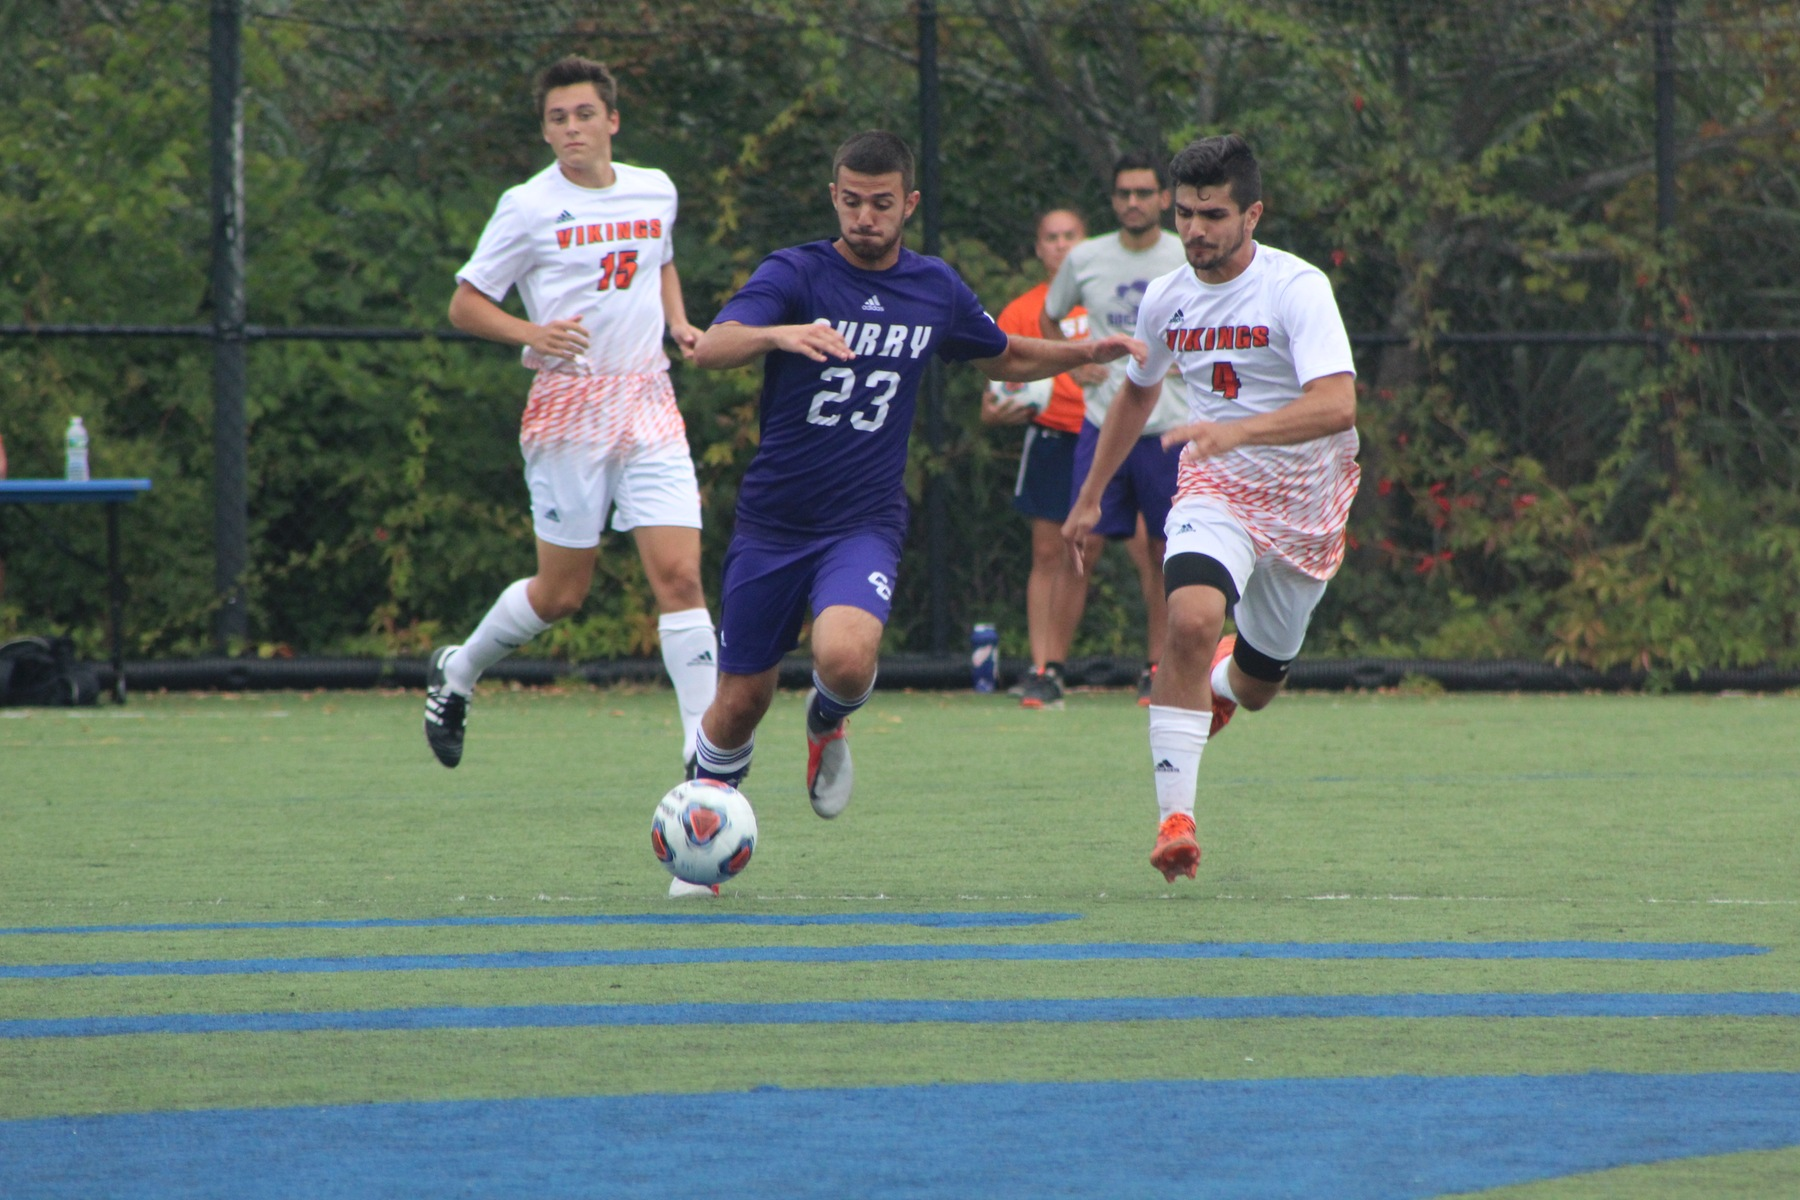 Salem State Scores Second Straight Shutout With 2-0 Win Over Curry